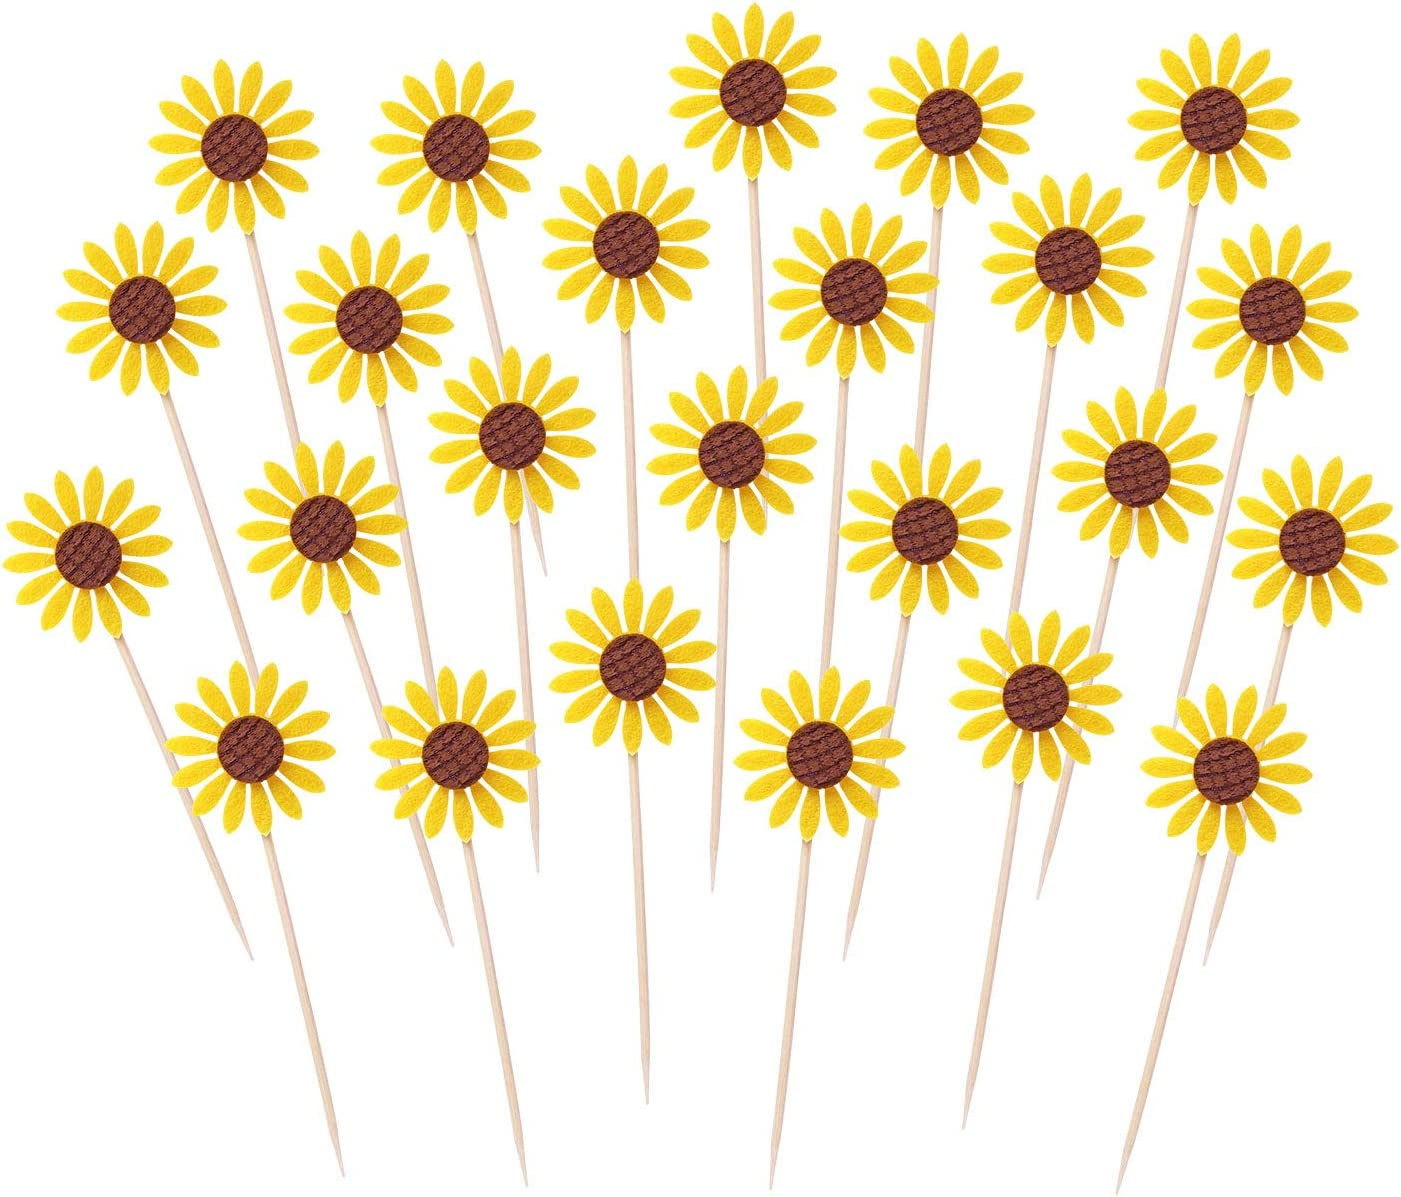 Penta Angel 24Pcs Sunflower Cupcake Toppers Cute Yellow Flower Toothpicks Cake Food Fruit Picks for Summer Baby Shower Wedding Birthday Party Decoration